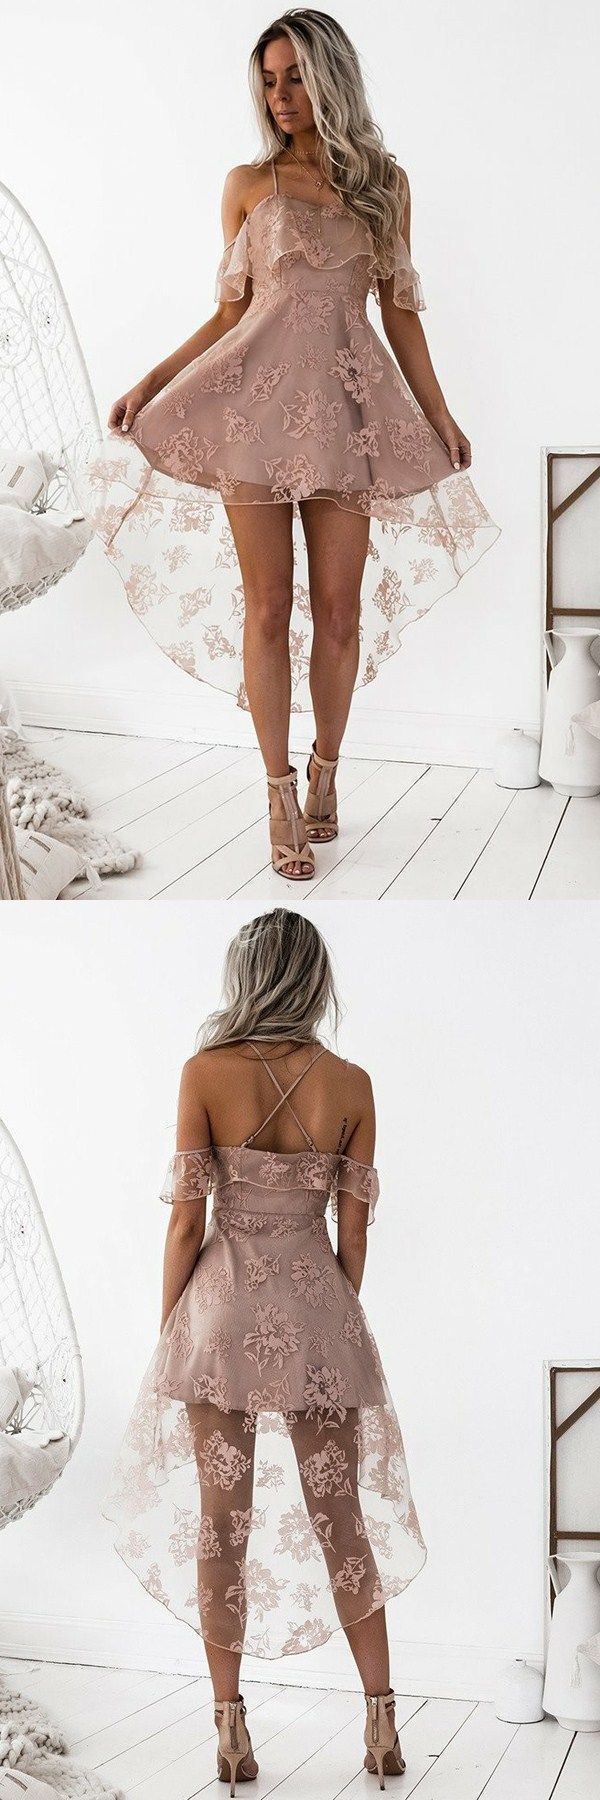 simple blush homecoming dresses, chic lace fashion gowns, semi formal dresses, chic hi-low prom dresses.